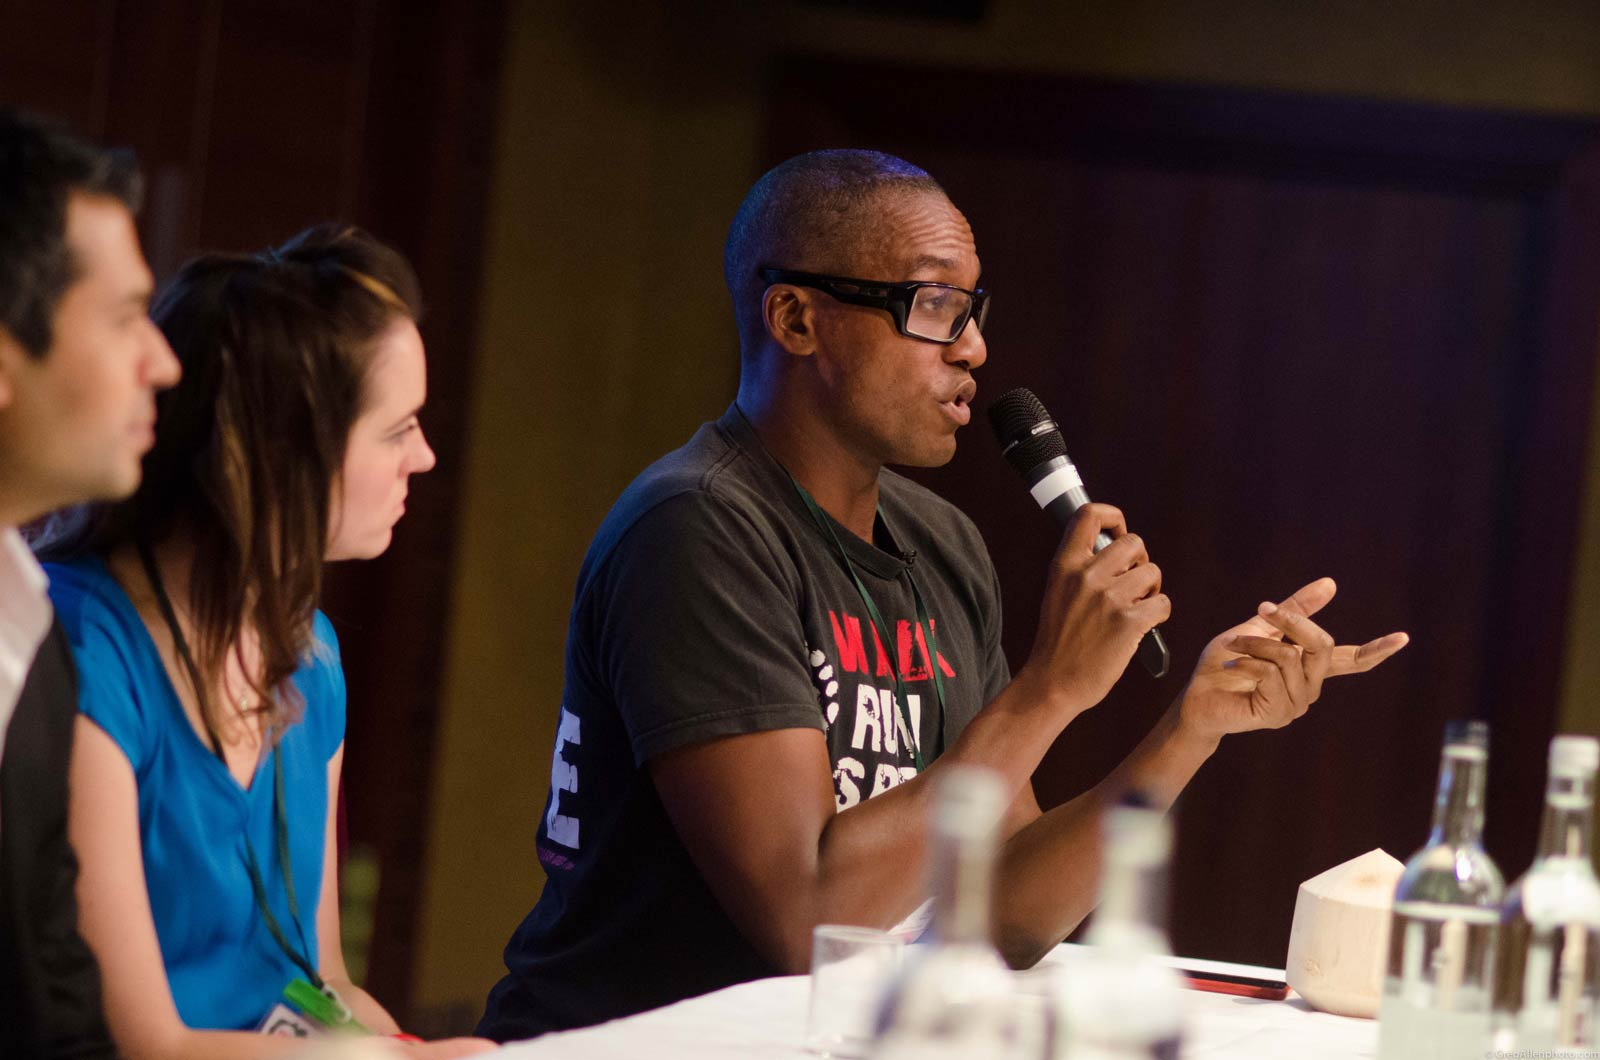 Darryl speaking on a panel about living a healthier lifestyle in London, England.